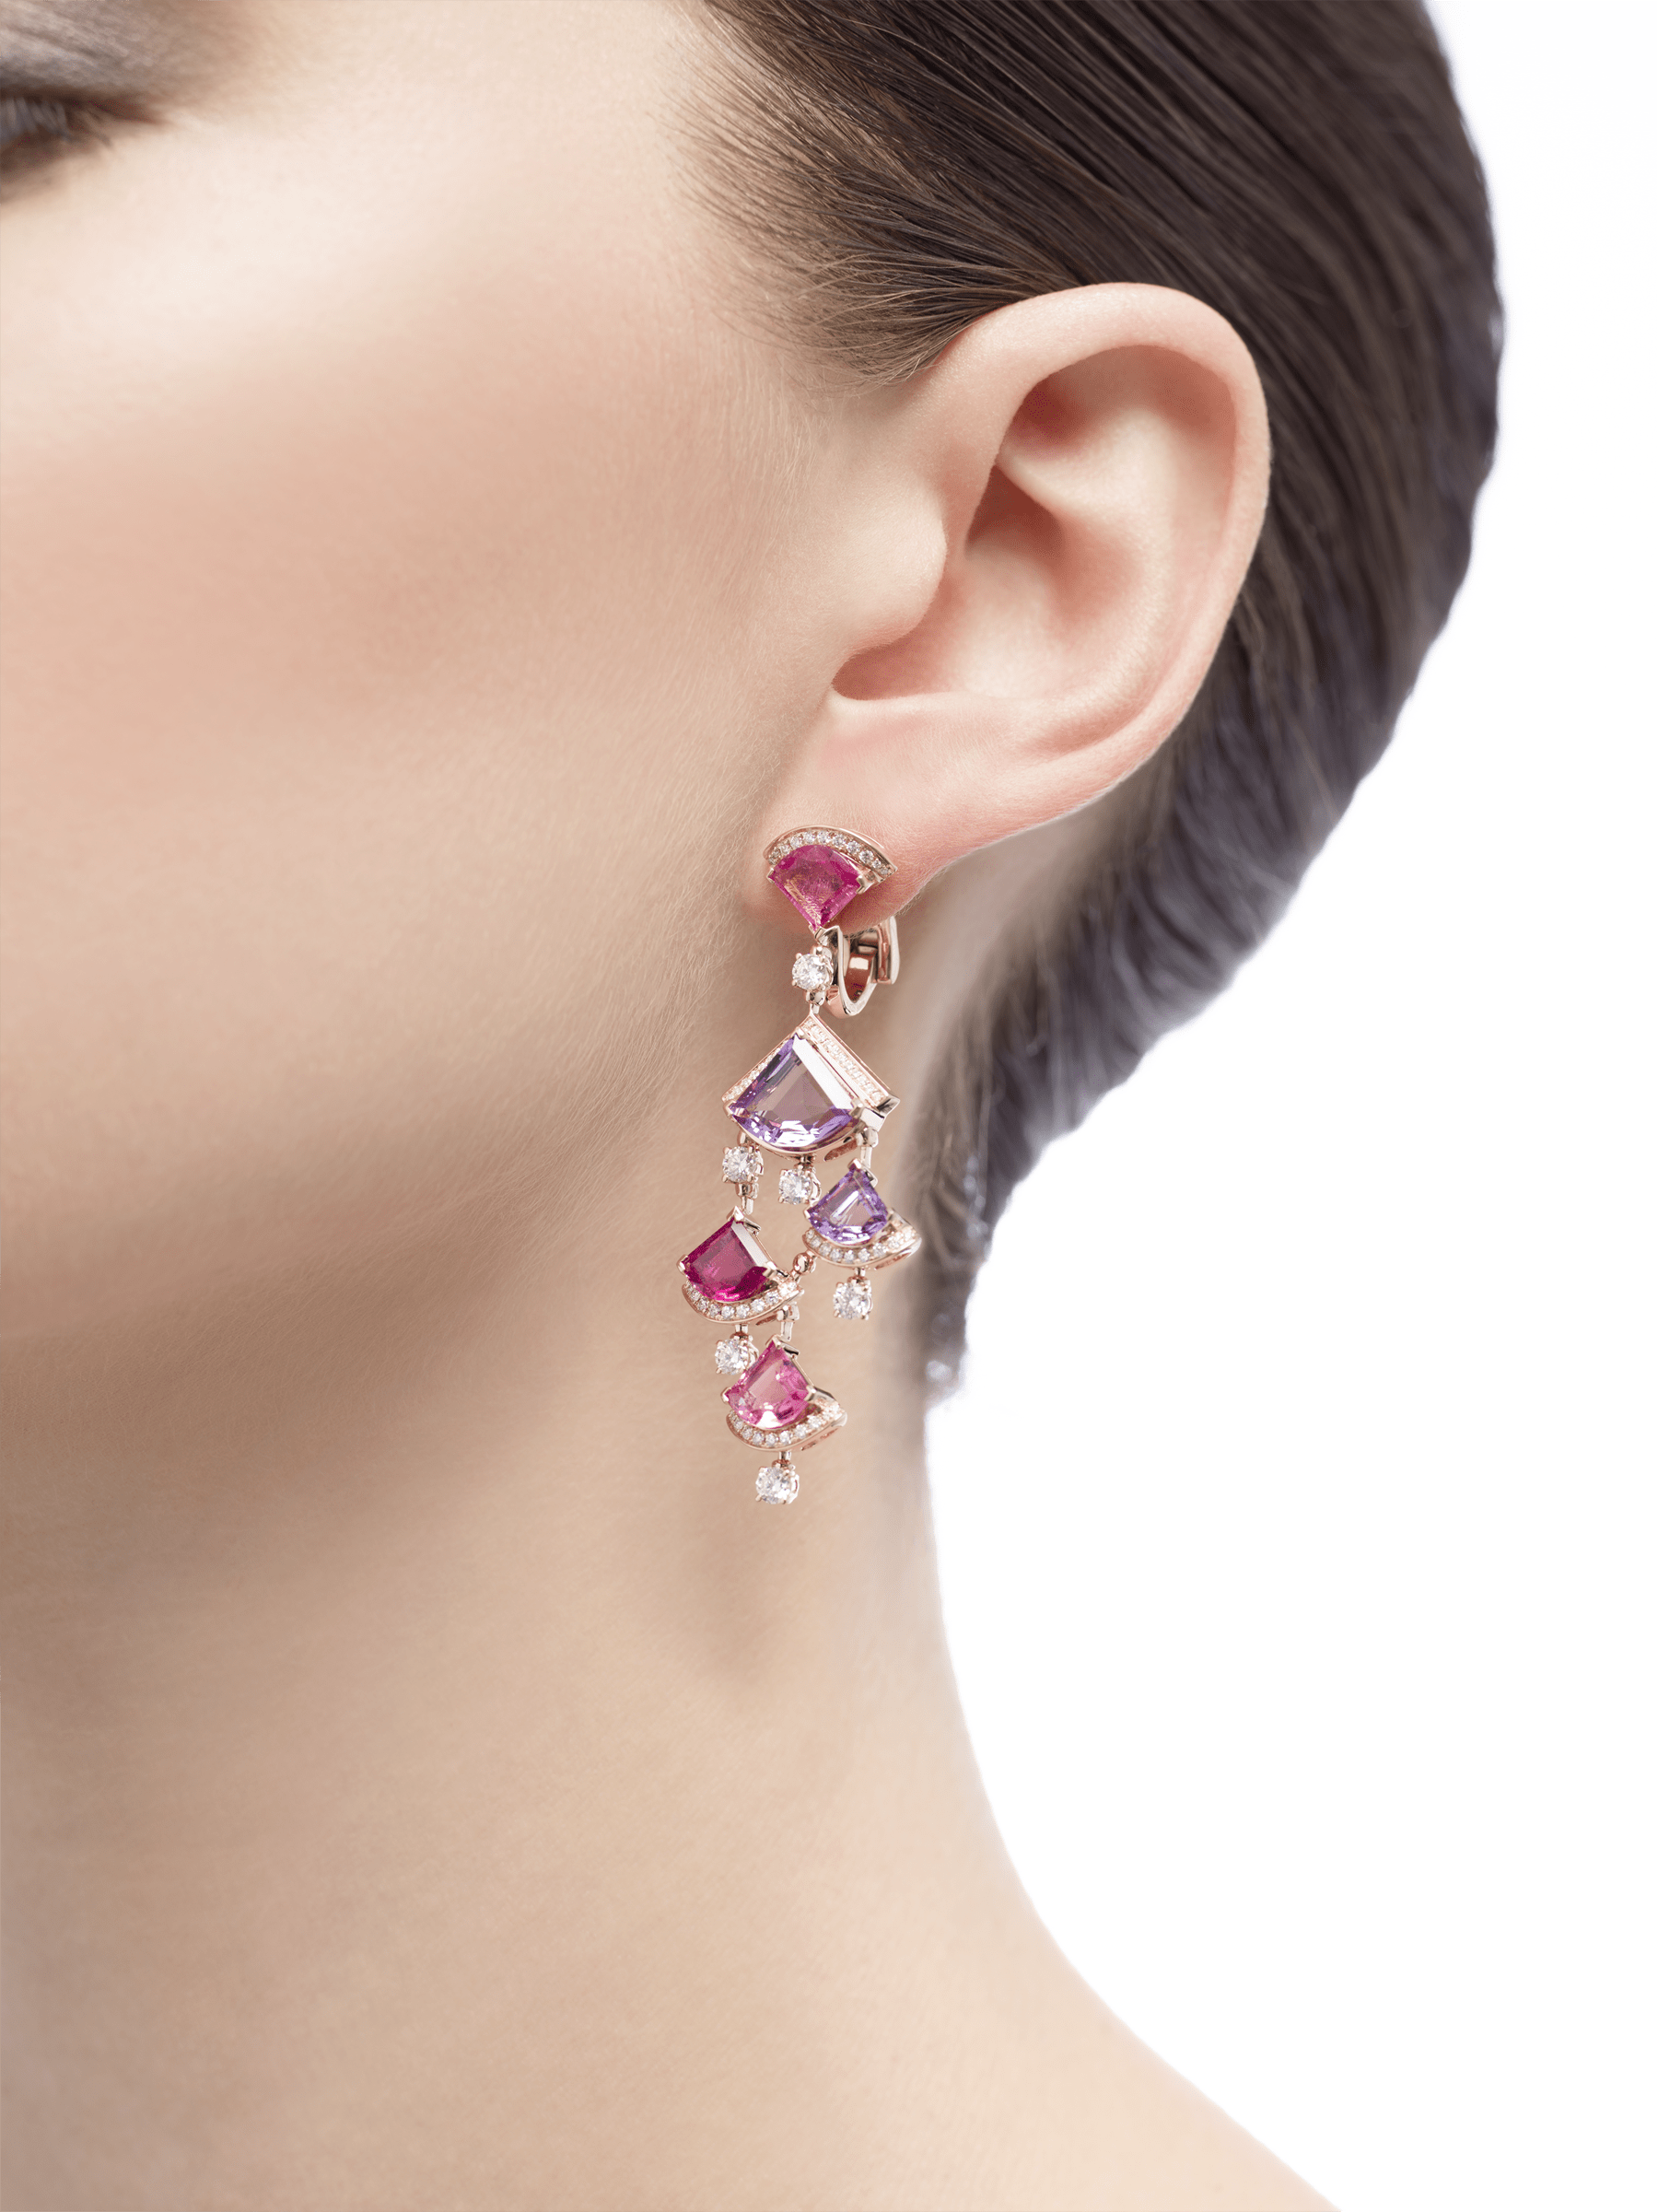 DIVAS' DREAM earrings in 18 kt rose gold, set with pink rubellite, amethyst and pavé diamonds. 354078 image 4